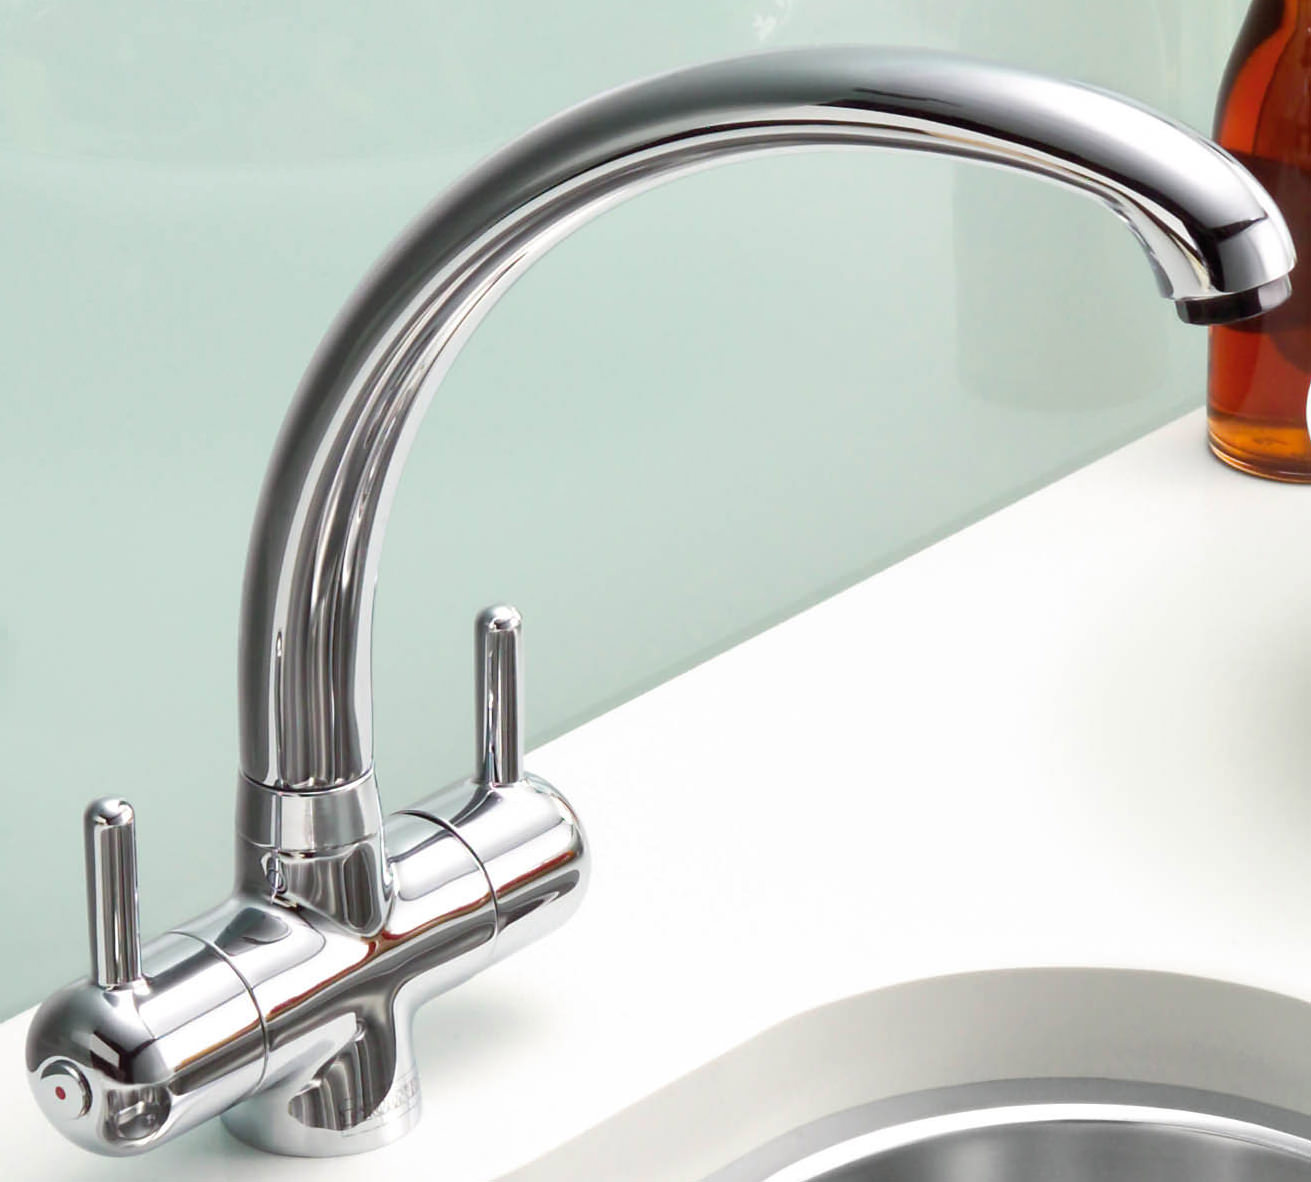 Franke Sink Mixer Taps : Image 4 of Franke FilterFlow Zurich Kitchen Sink Mixer Tap Chrome